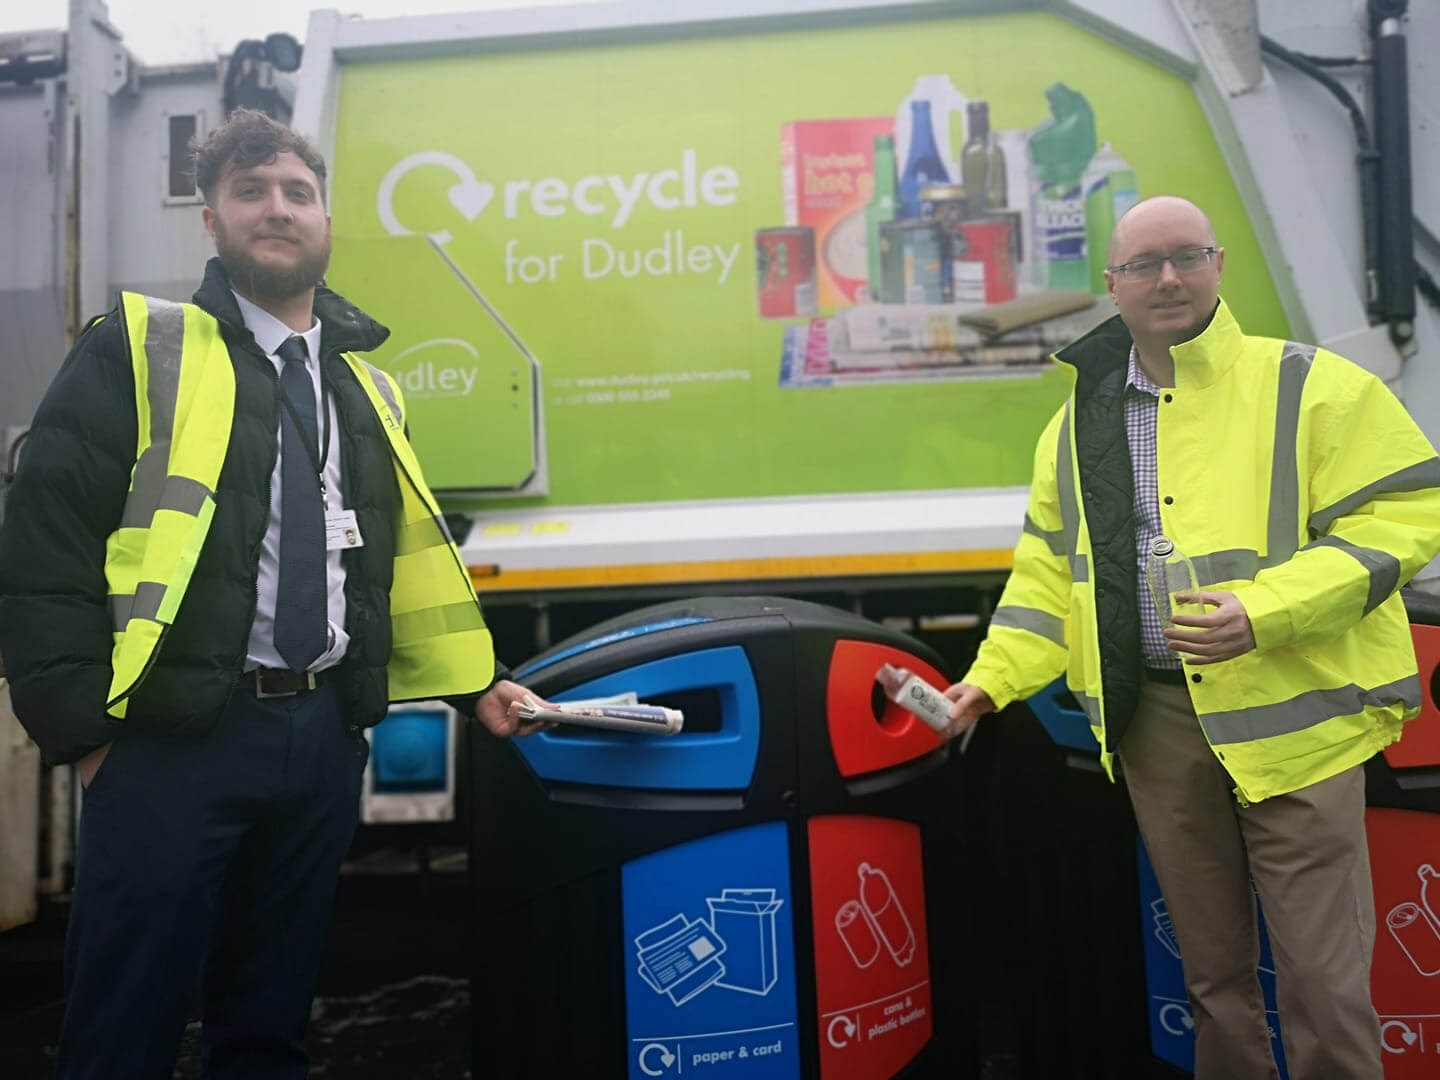 Recycle on the go in the Dudley borough